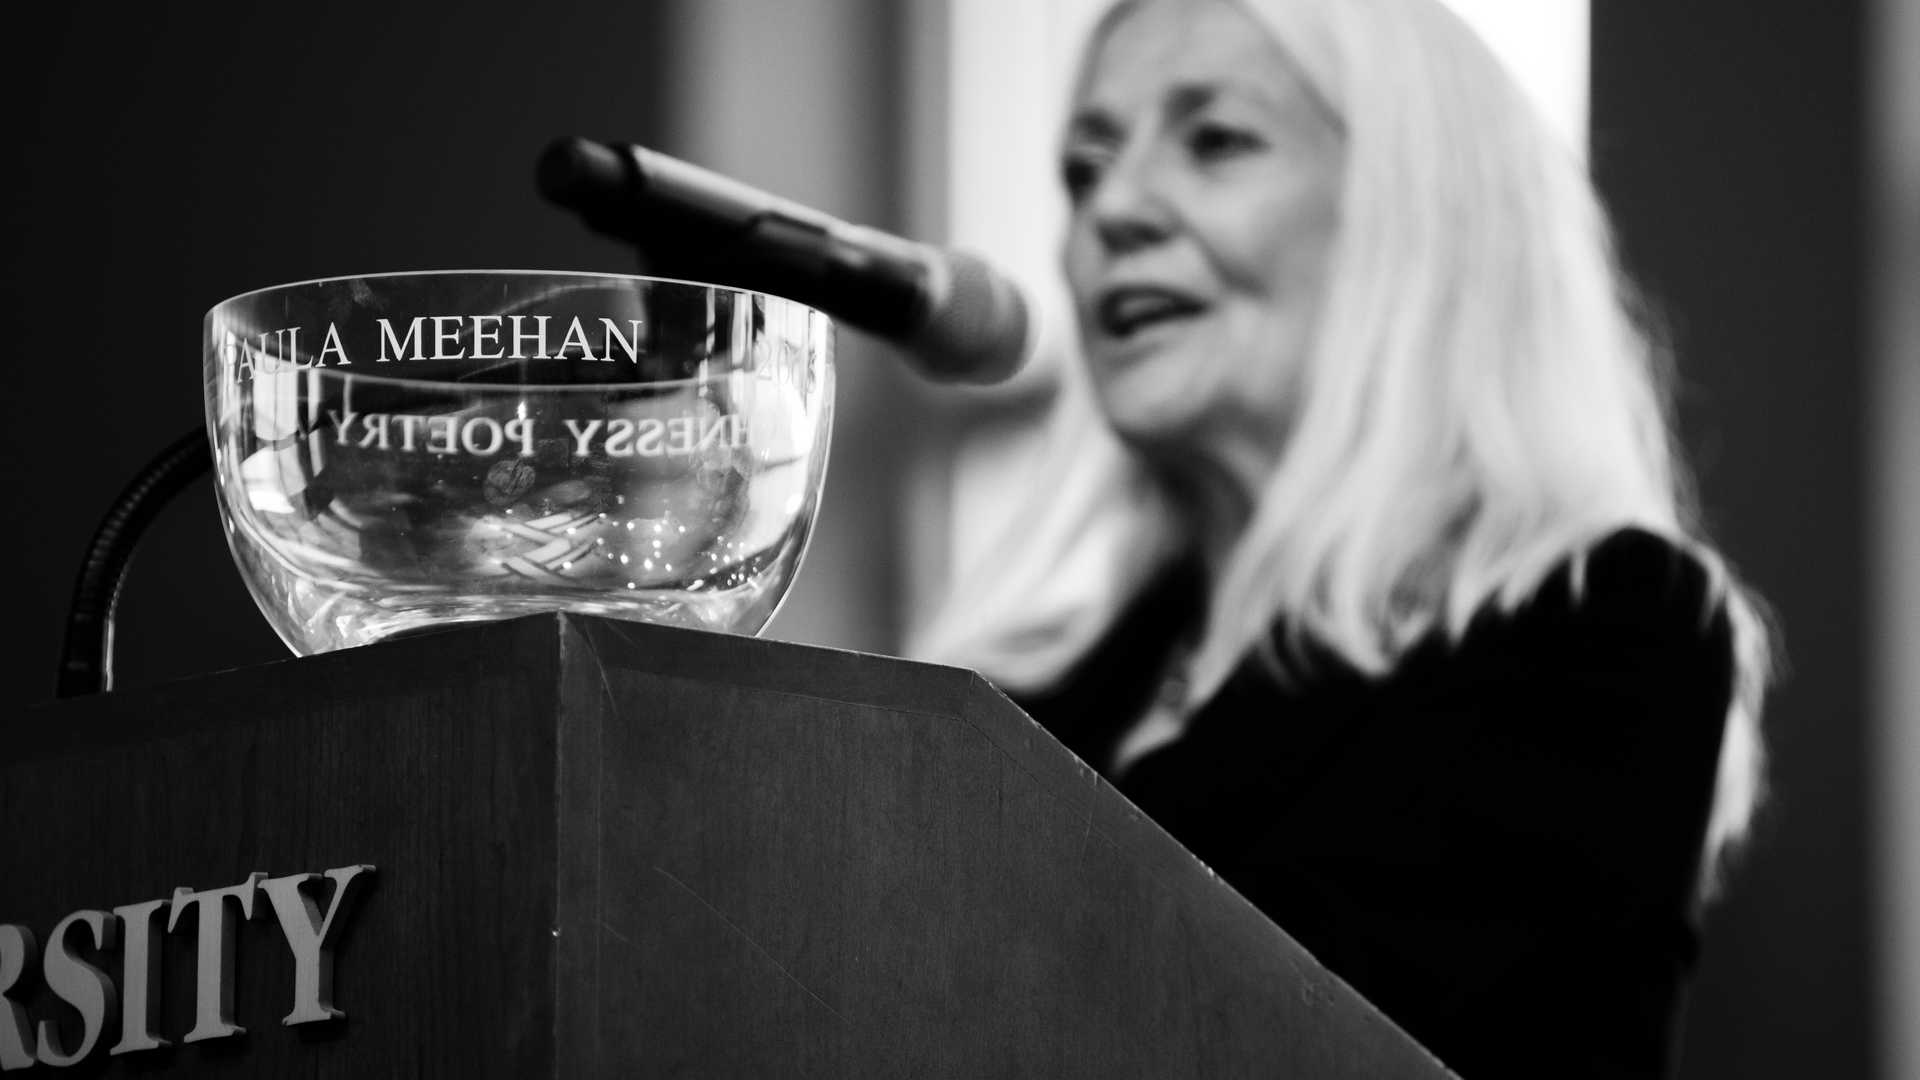 Paula Meehanaccepts award at the Irish Poetry Society Reception.